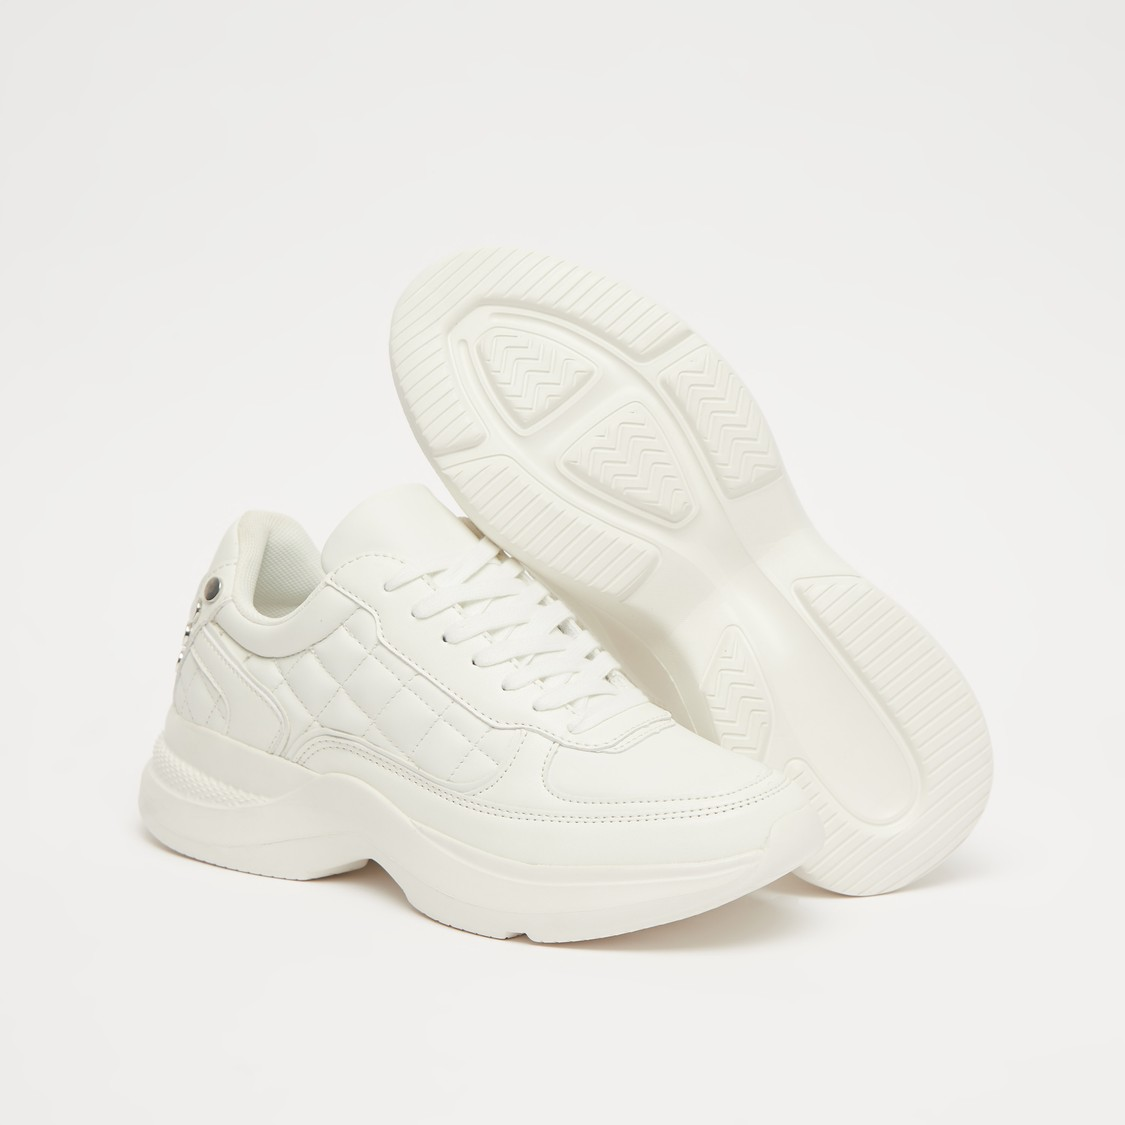 Quilt Stitched Lace-Up Sports Shoes